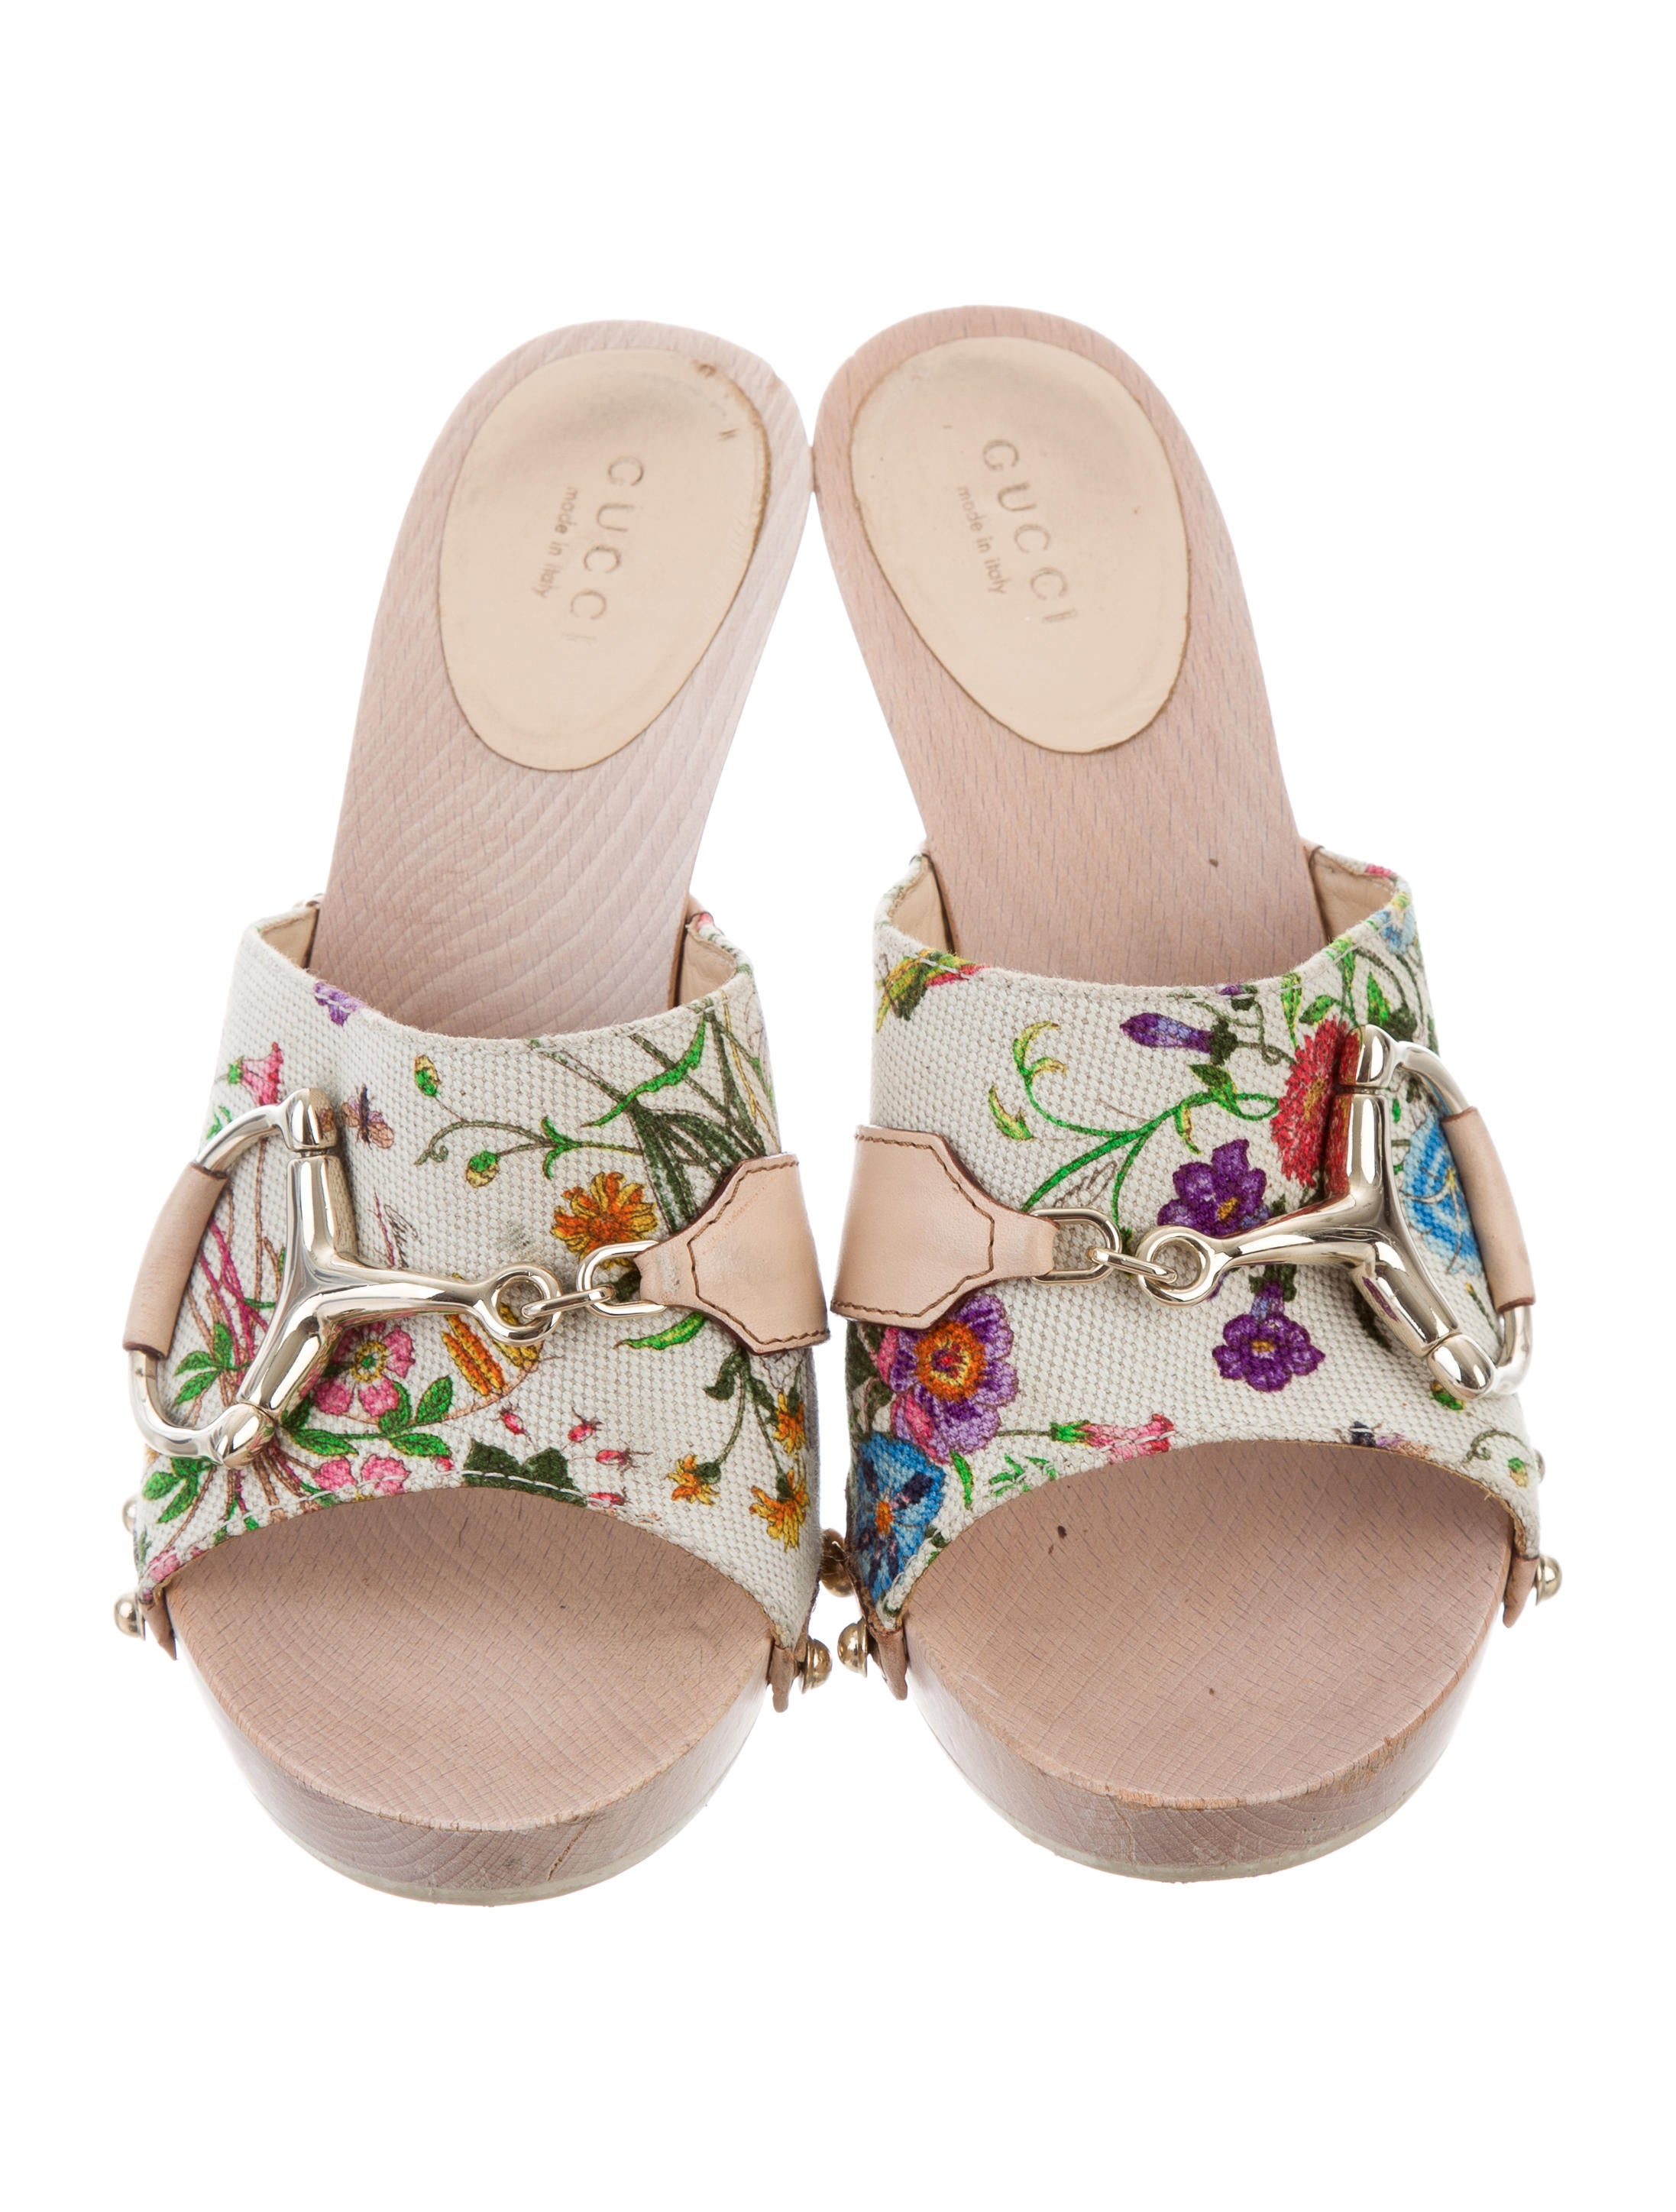 gucci floral slide sandals - shoes